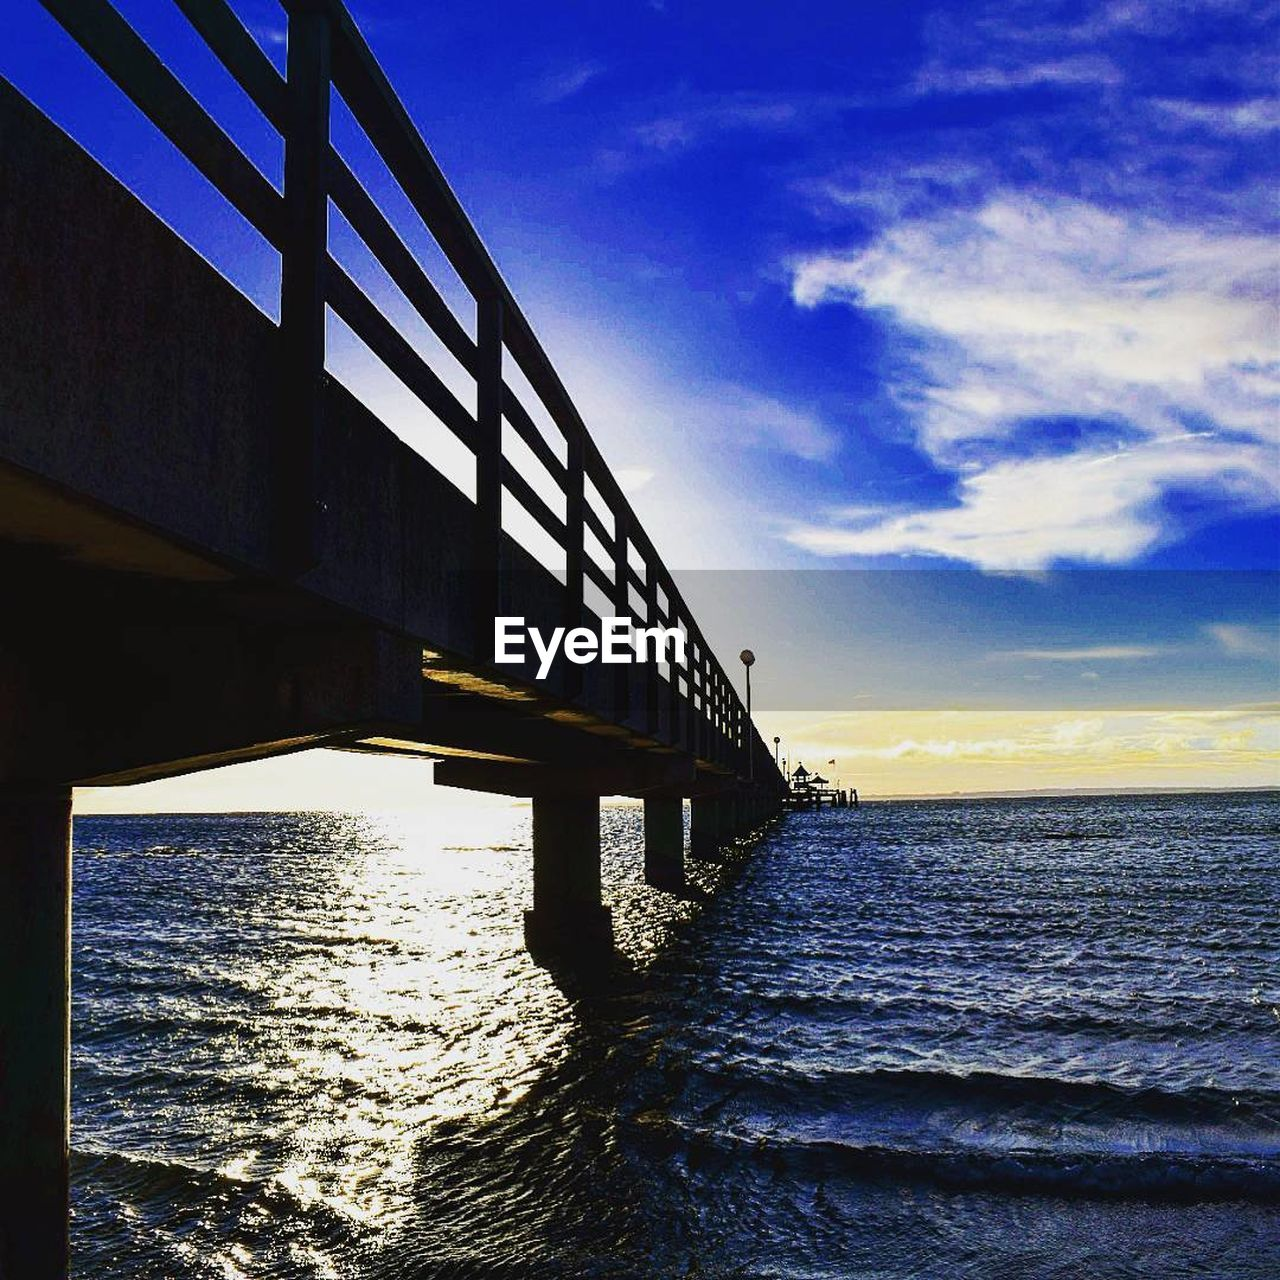 bridge - man made structure, connection, water, built structure, sea, sky, cloud - sky, architecture, sunset, transportation, outdoors, sunlight, no people, horizon over water, nature, blue, day, bridge, low angle view, beauty in nature, scenics